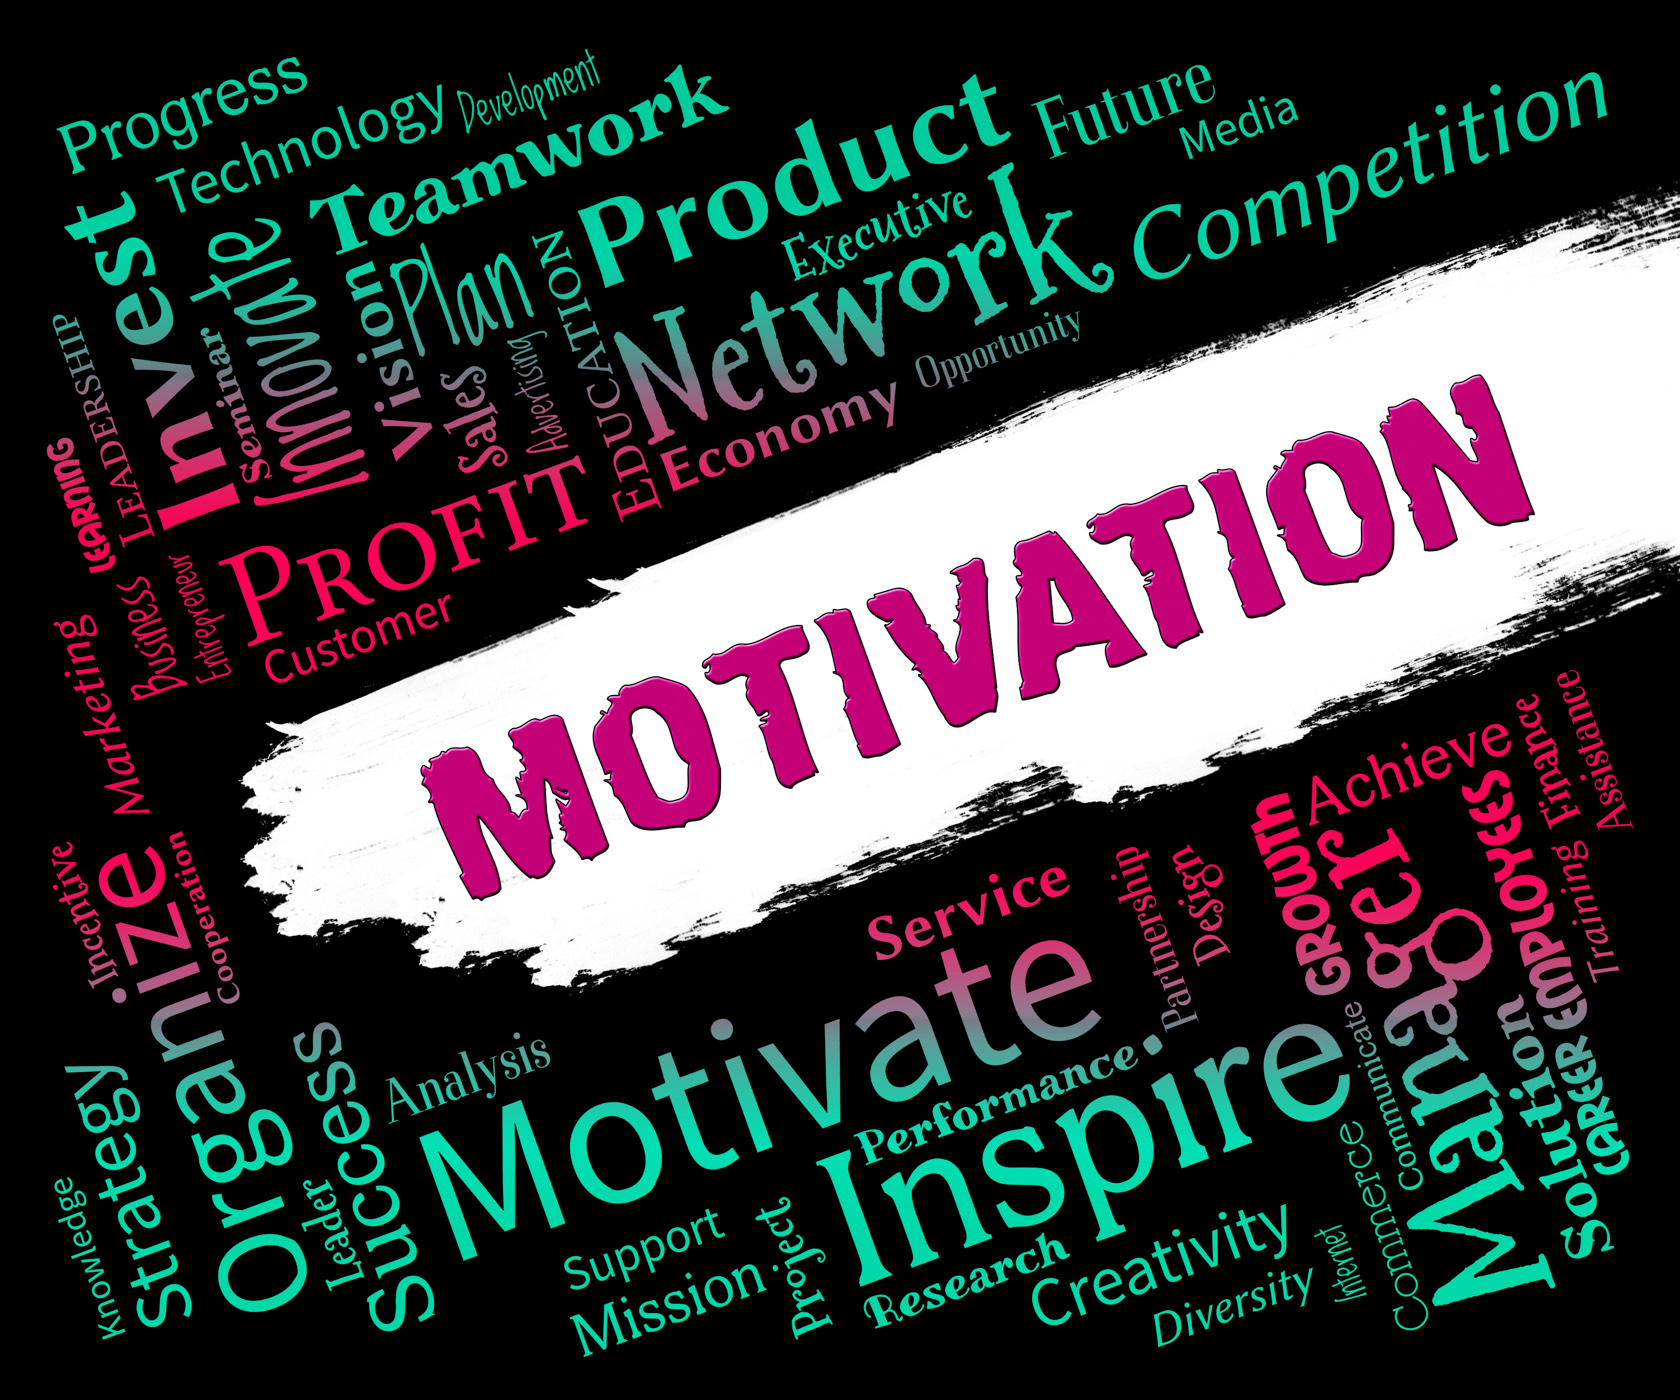 Motivation word represents do it now and inspire photo